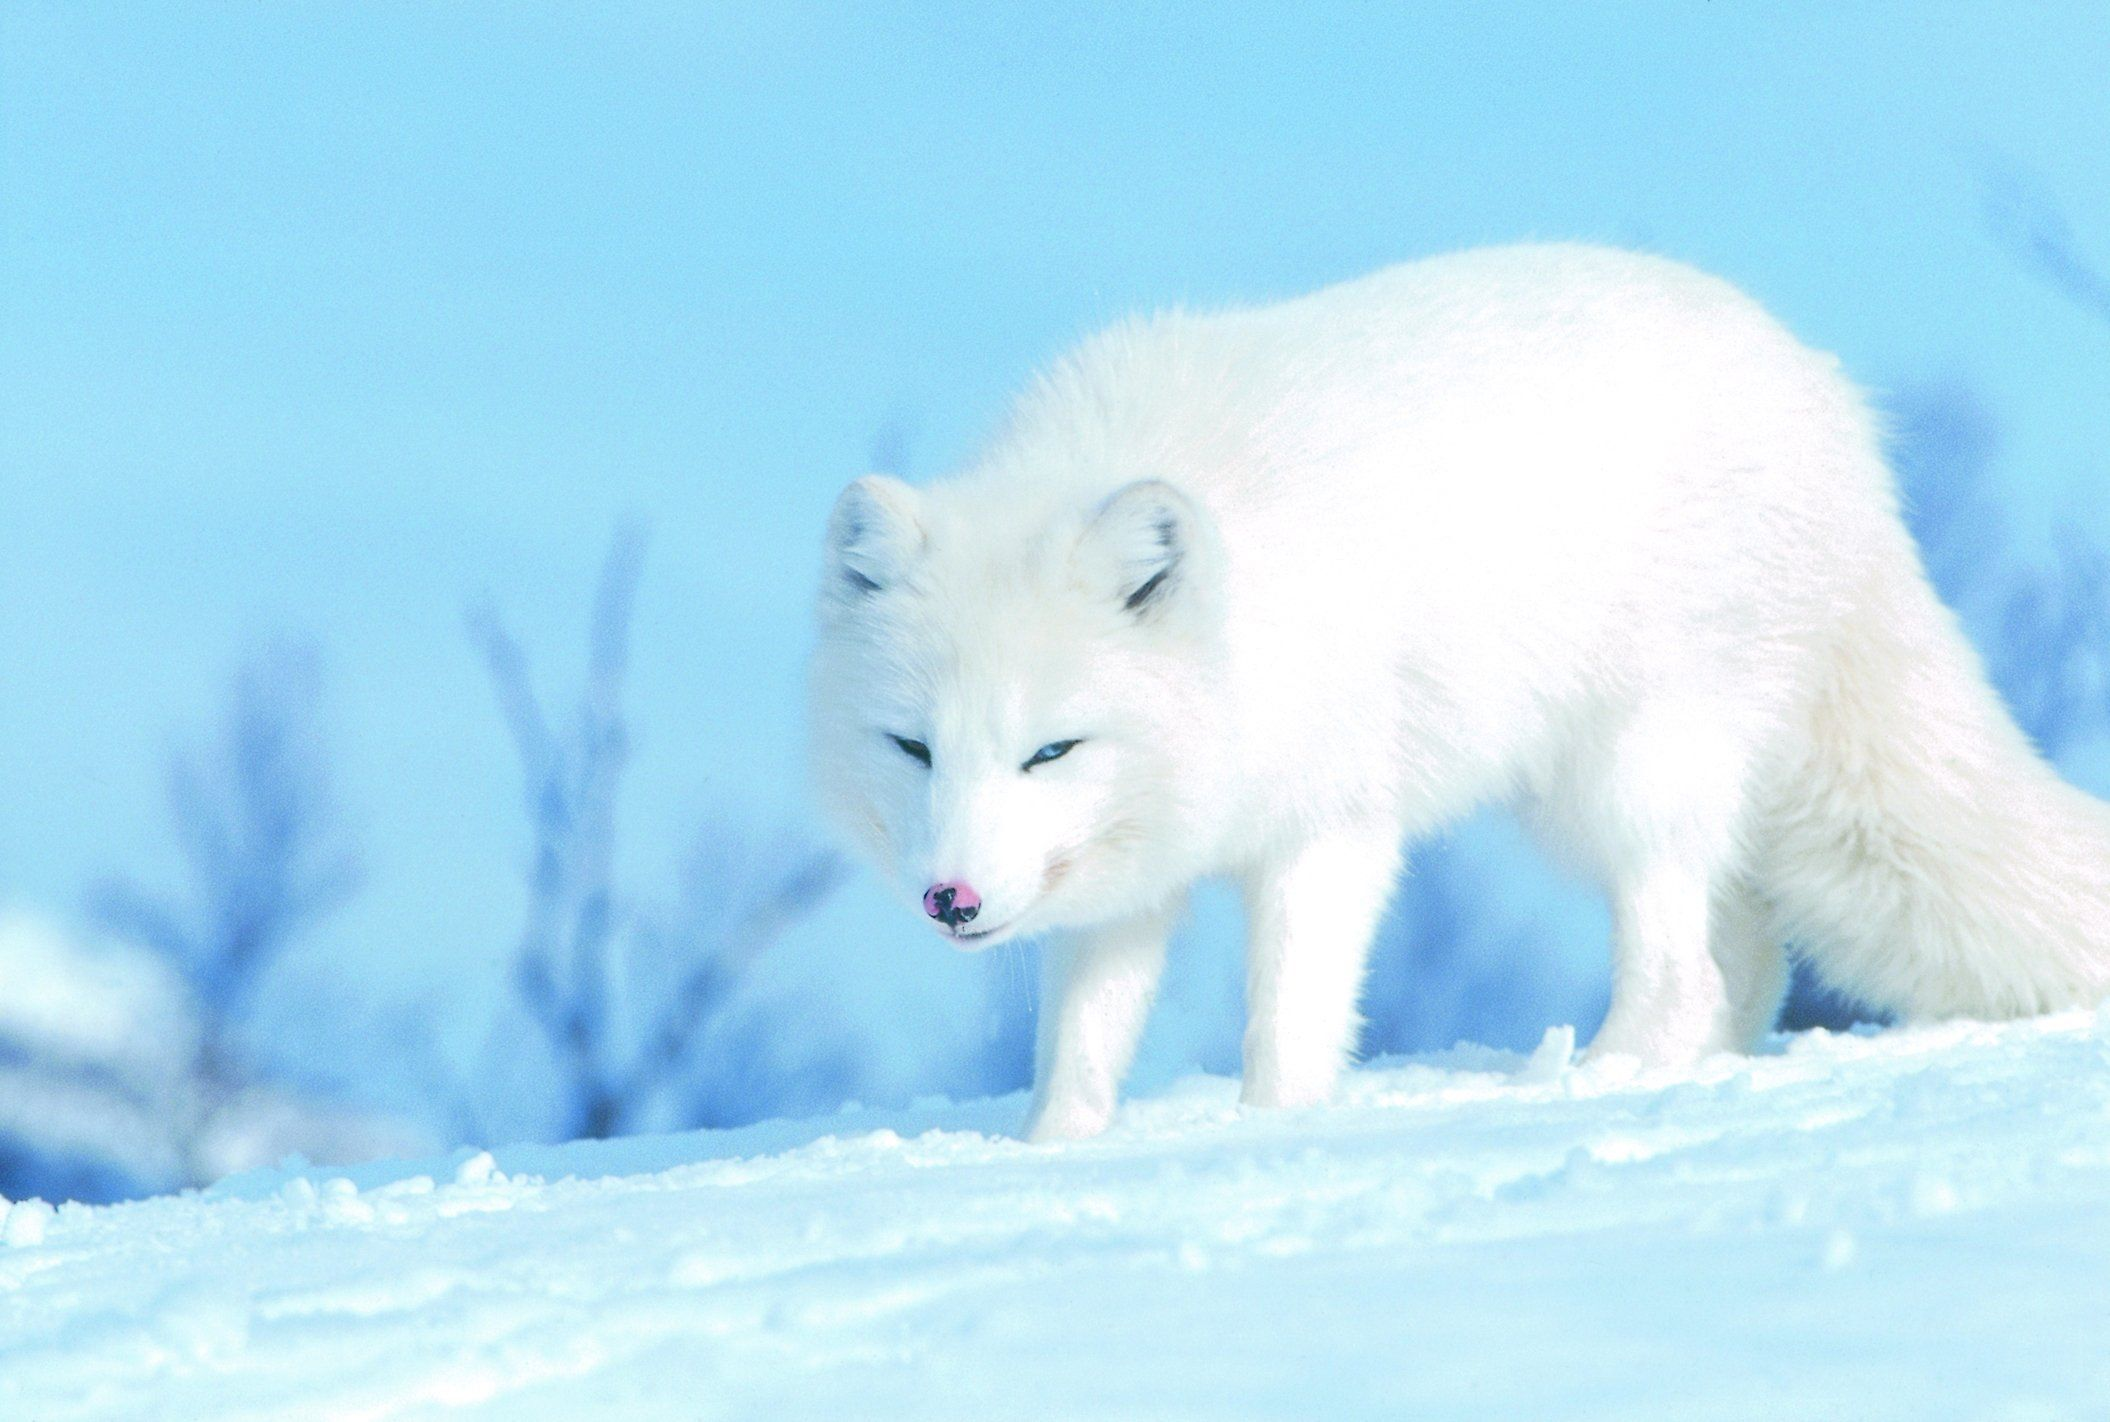 Fondo de pantalla de Polar White Fox | 2110x1422 | ID: 58494 - WallpaperVortex.com